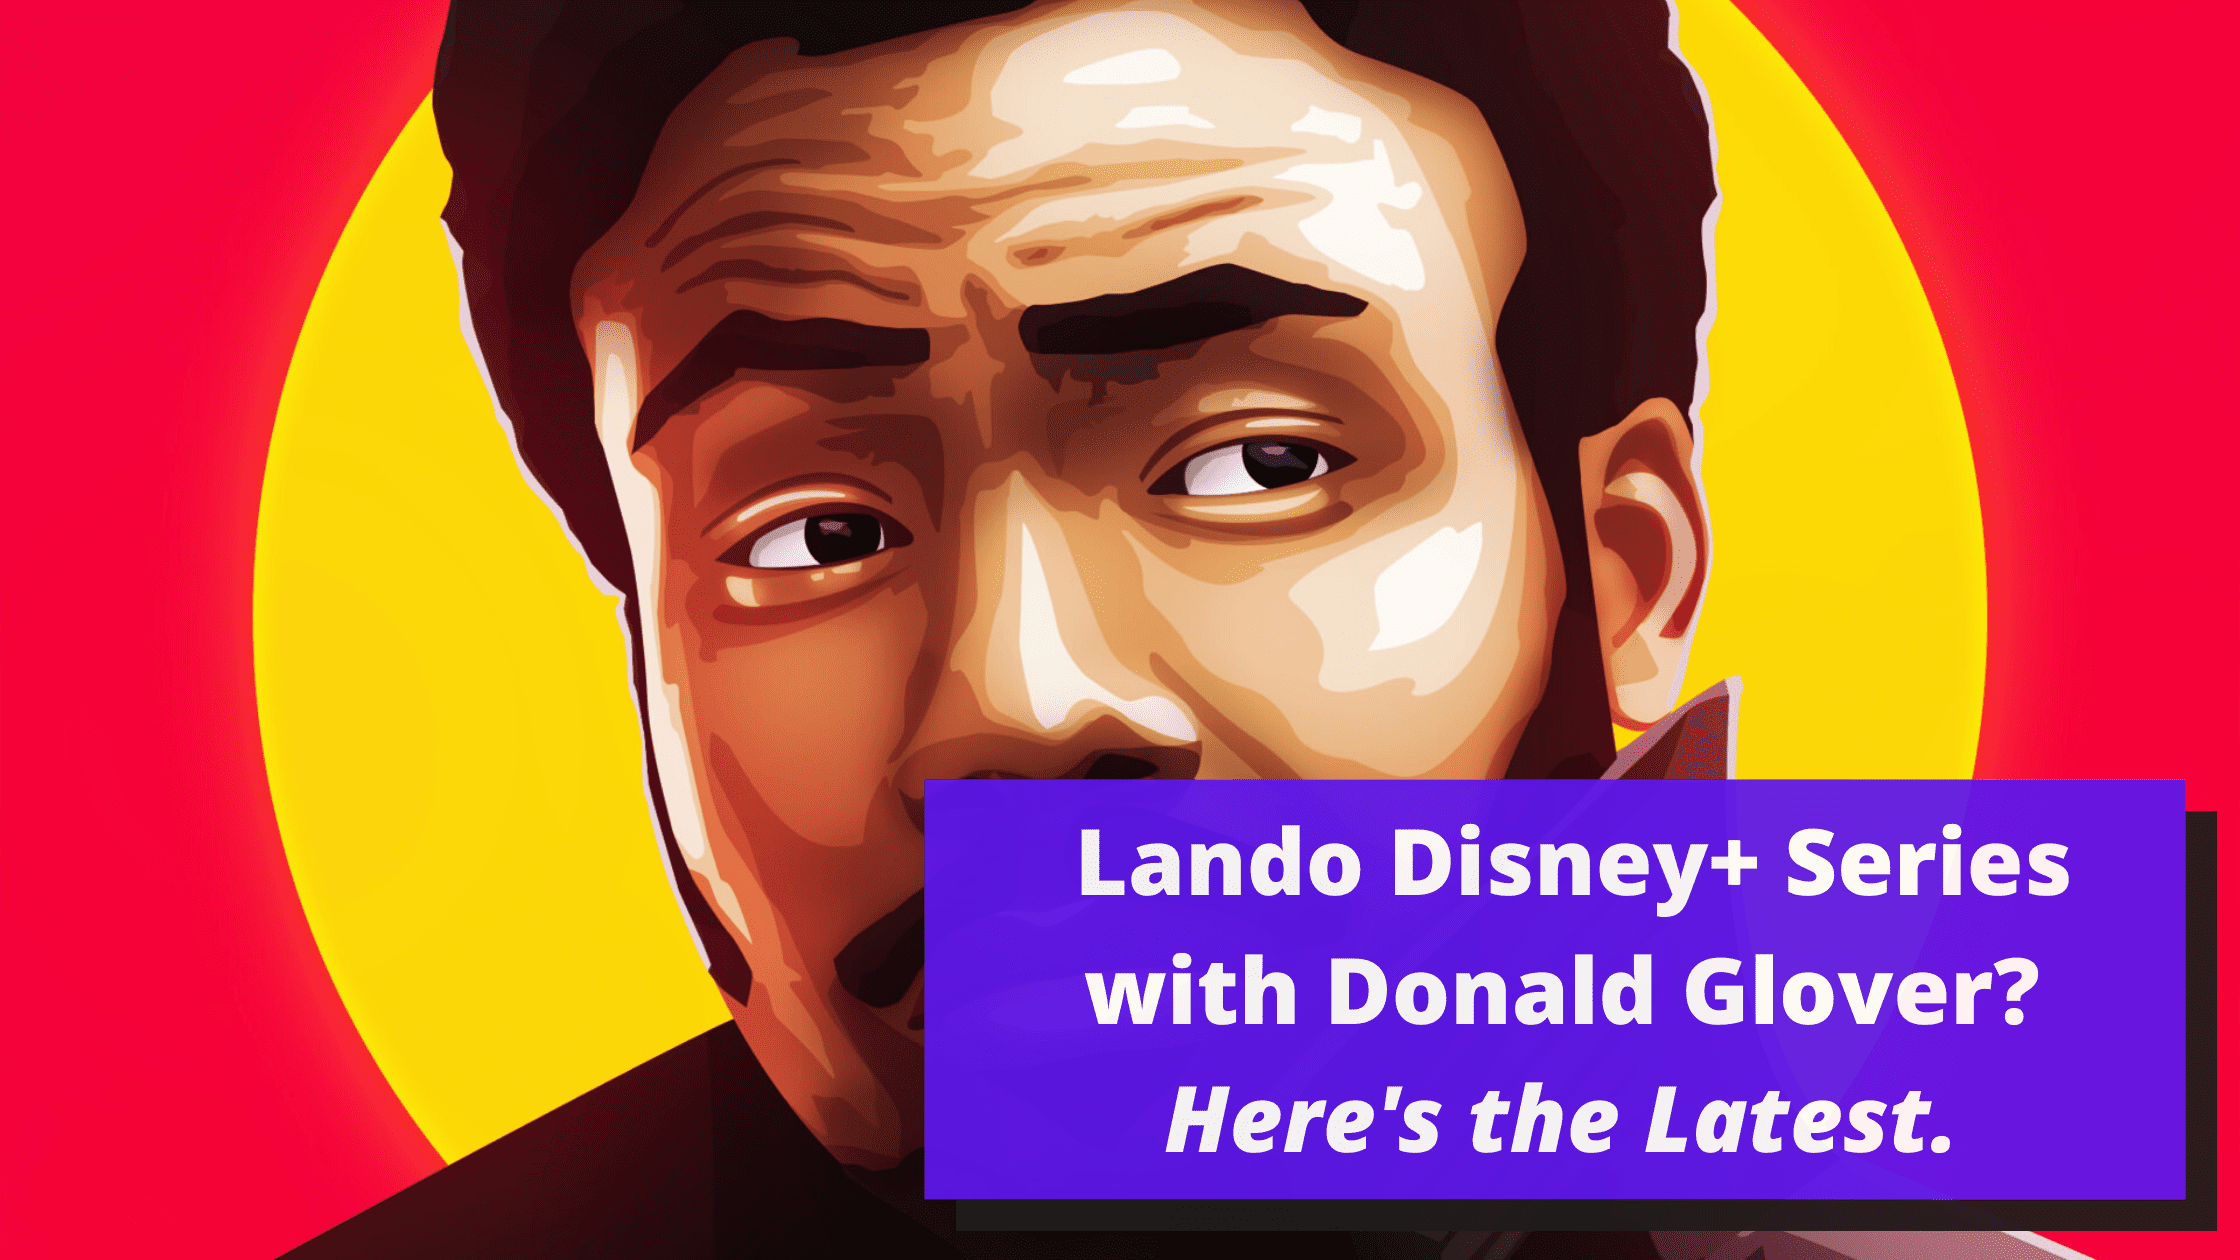 Lando-Disney-Plus-Series-with-Donald-Glover-Heres-the-Latest